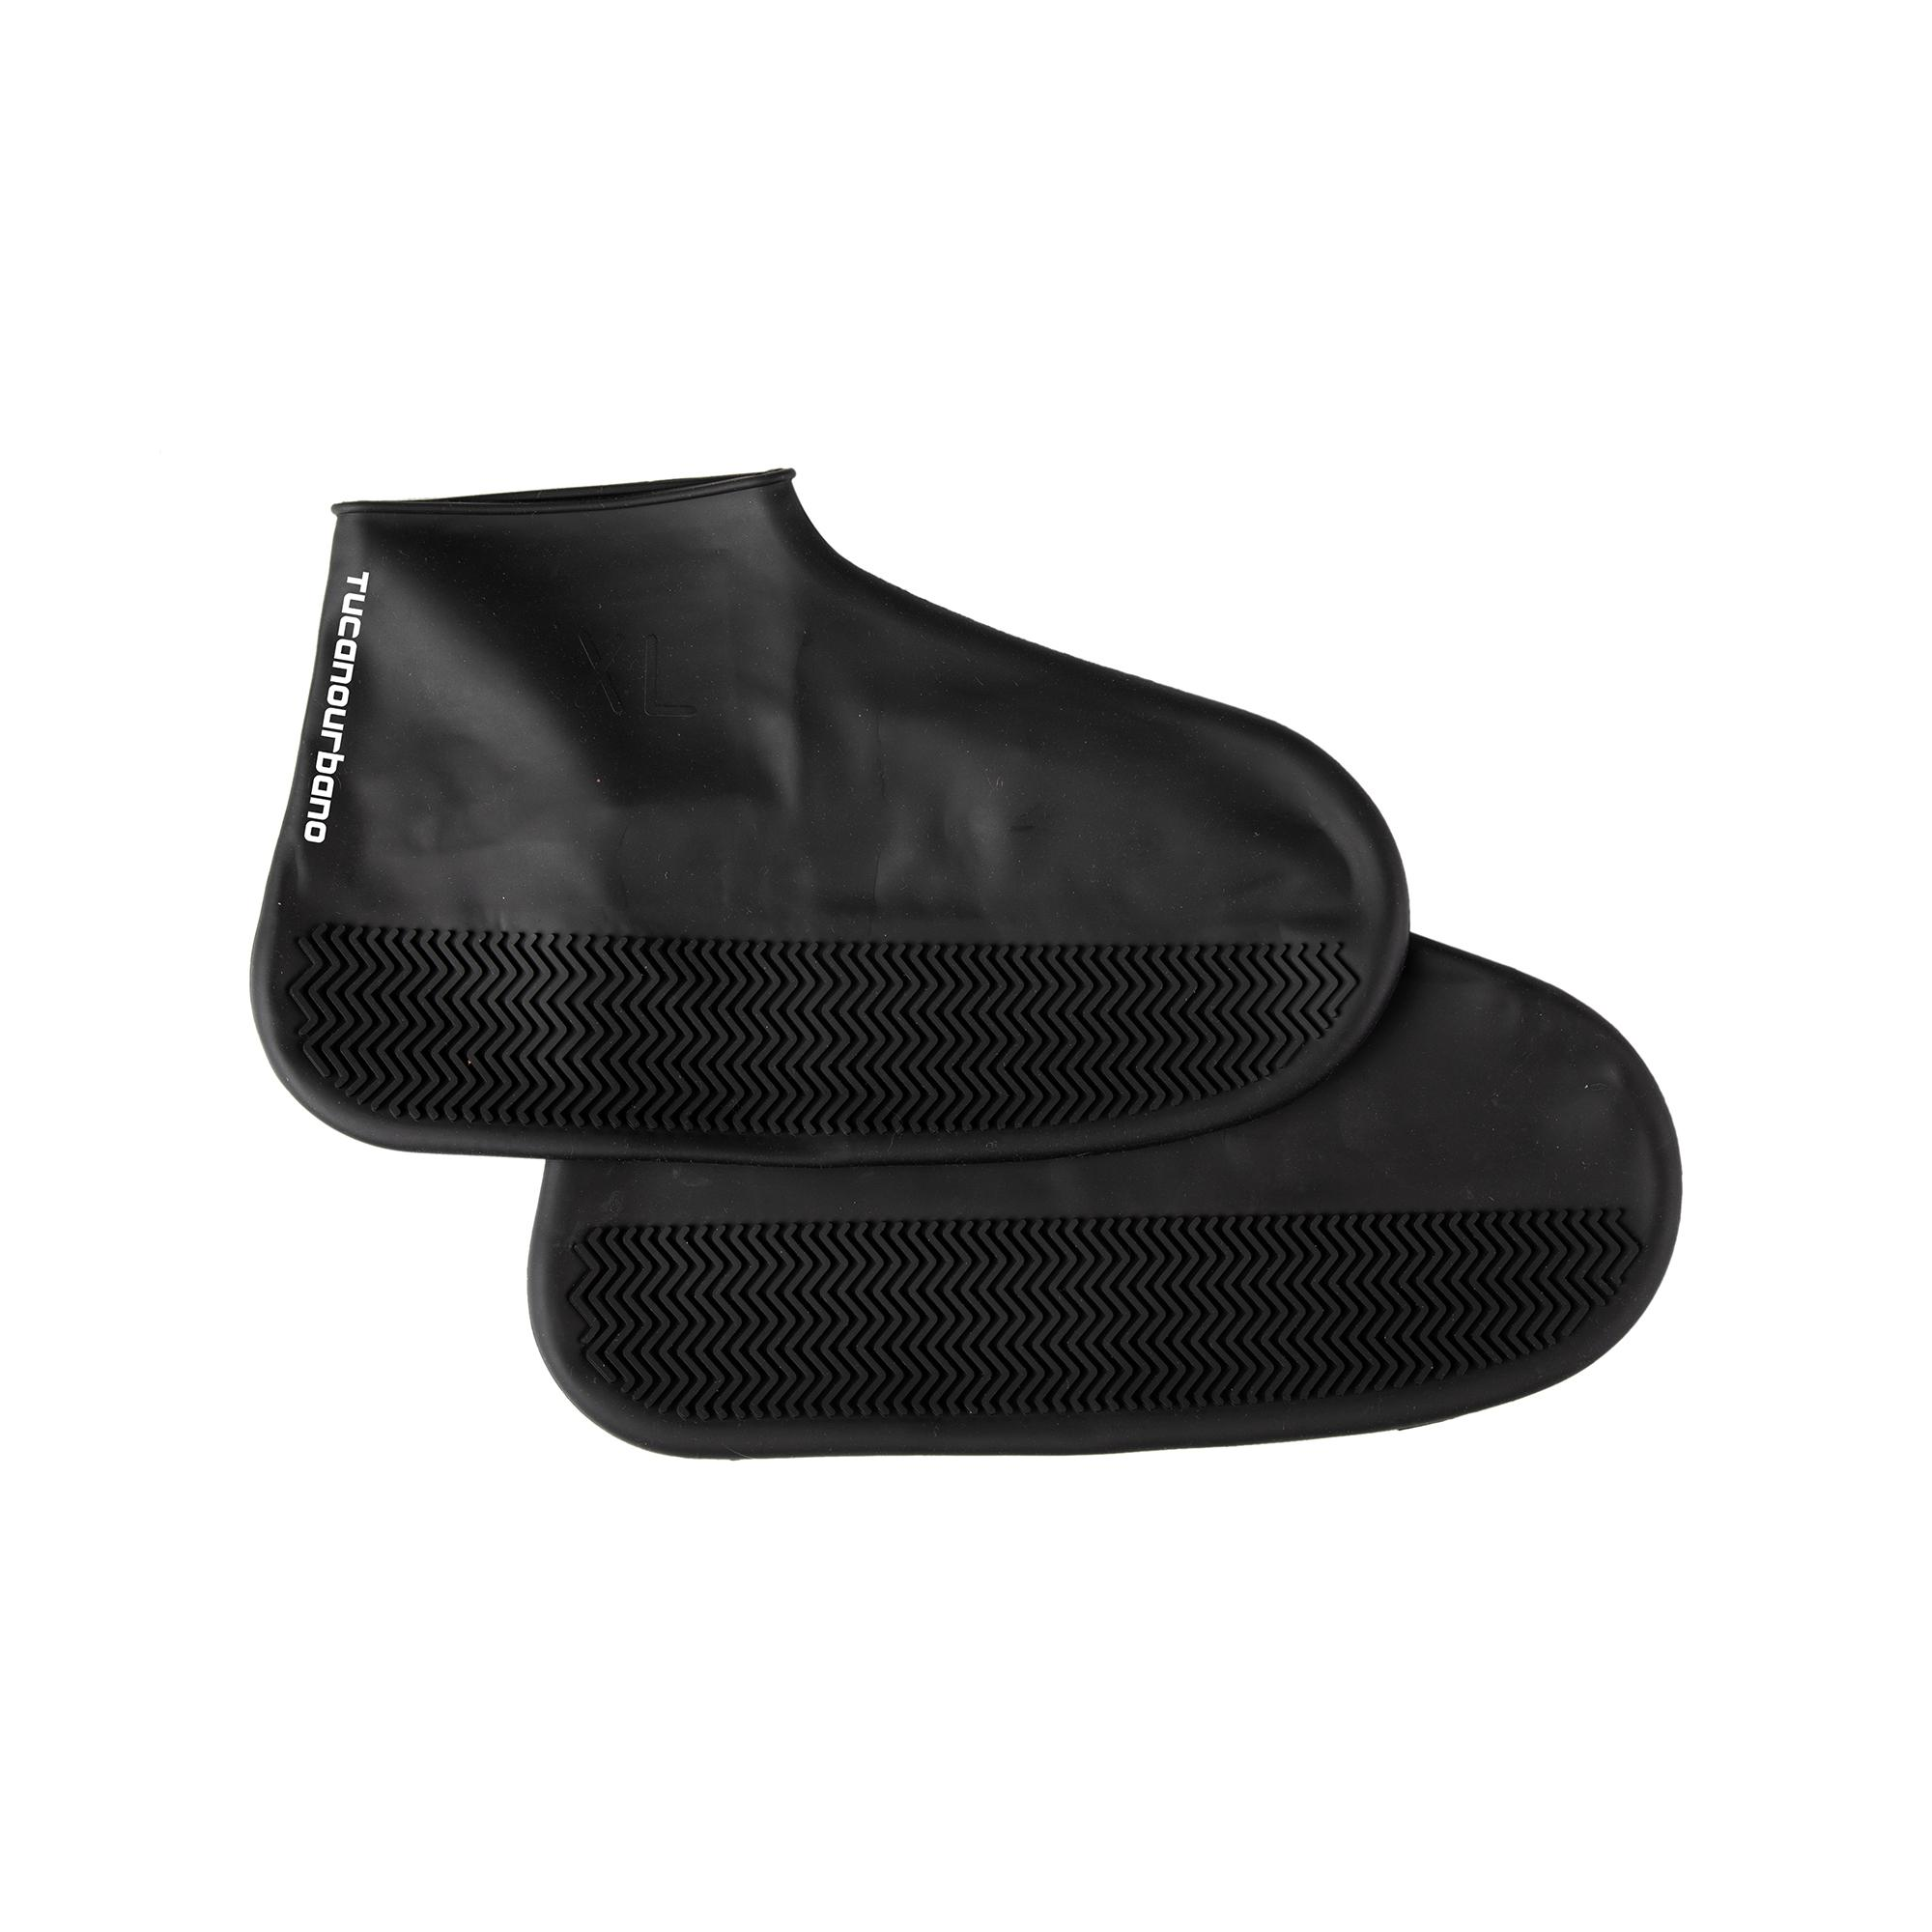 Copriscarpe Footerine Nero